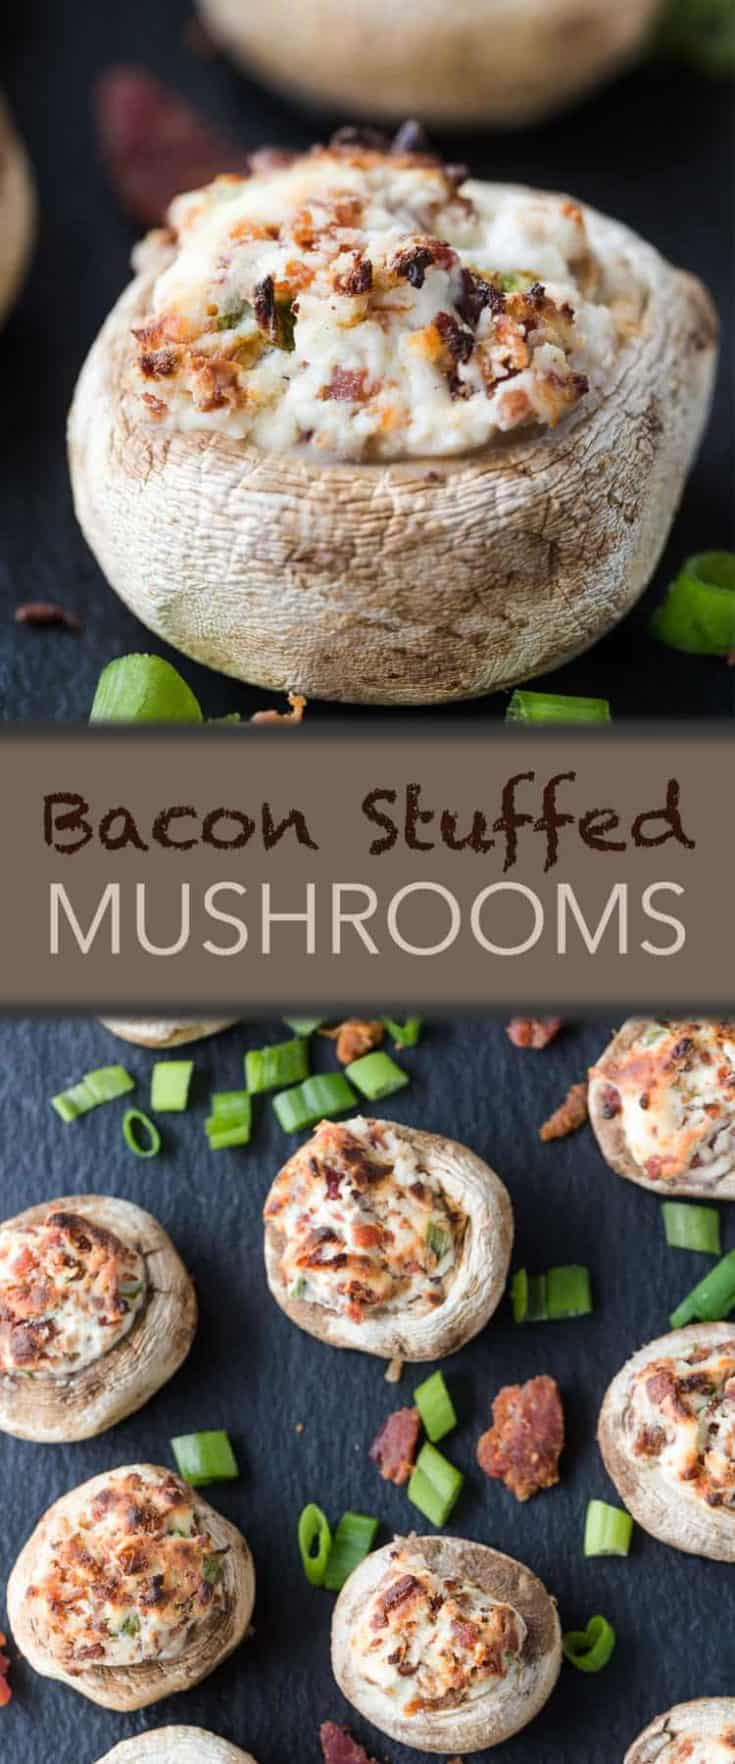 5-ingredient Bacon Stuffed Mushrooms are stuffed with crispy, salty bacon and cheese then broiled to perfection. the perfect party appetizer recipe! #stuffedmushrooms #appetizer #appetizerrecipe